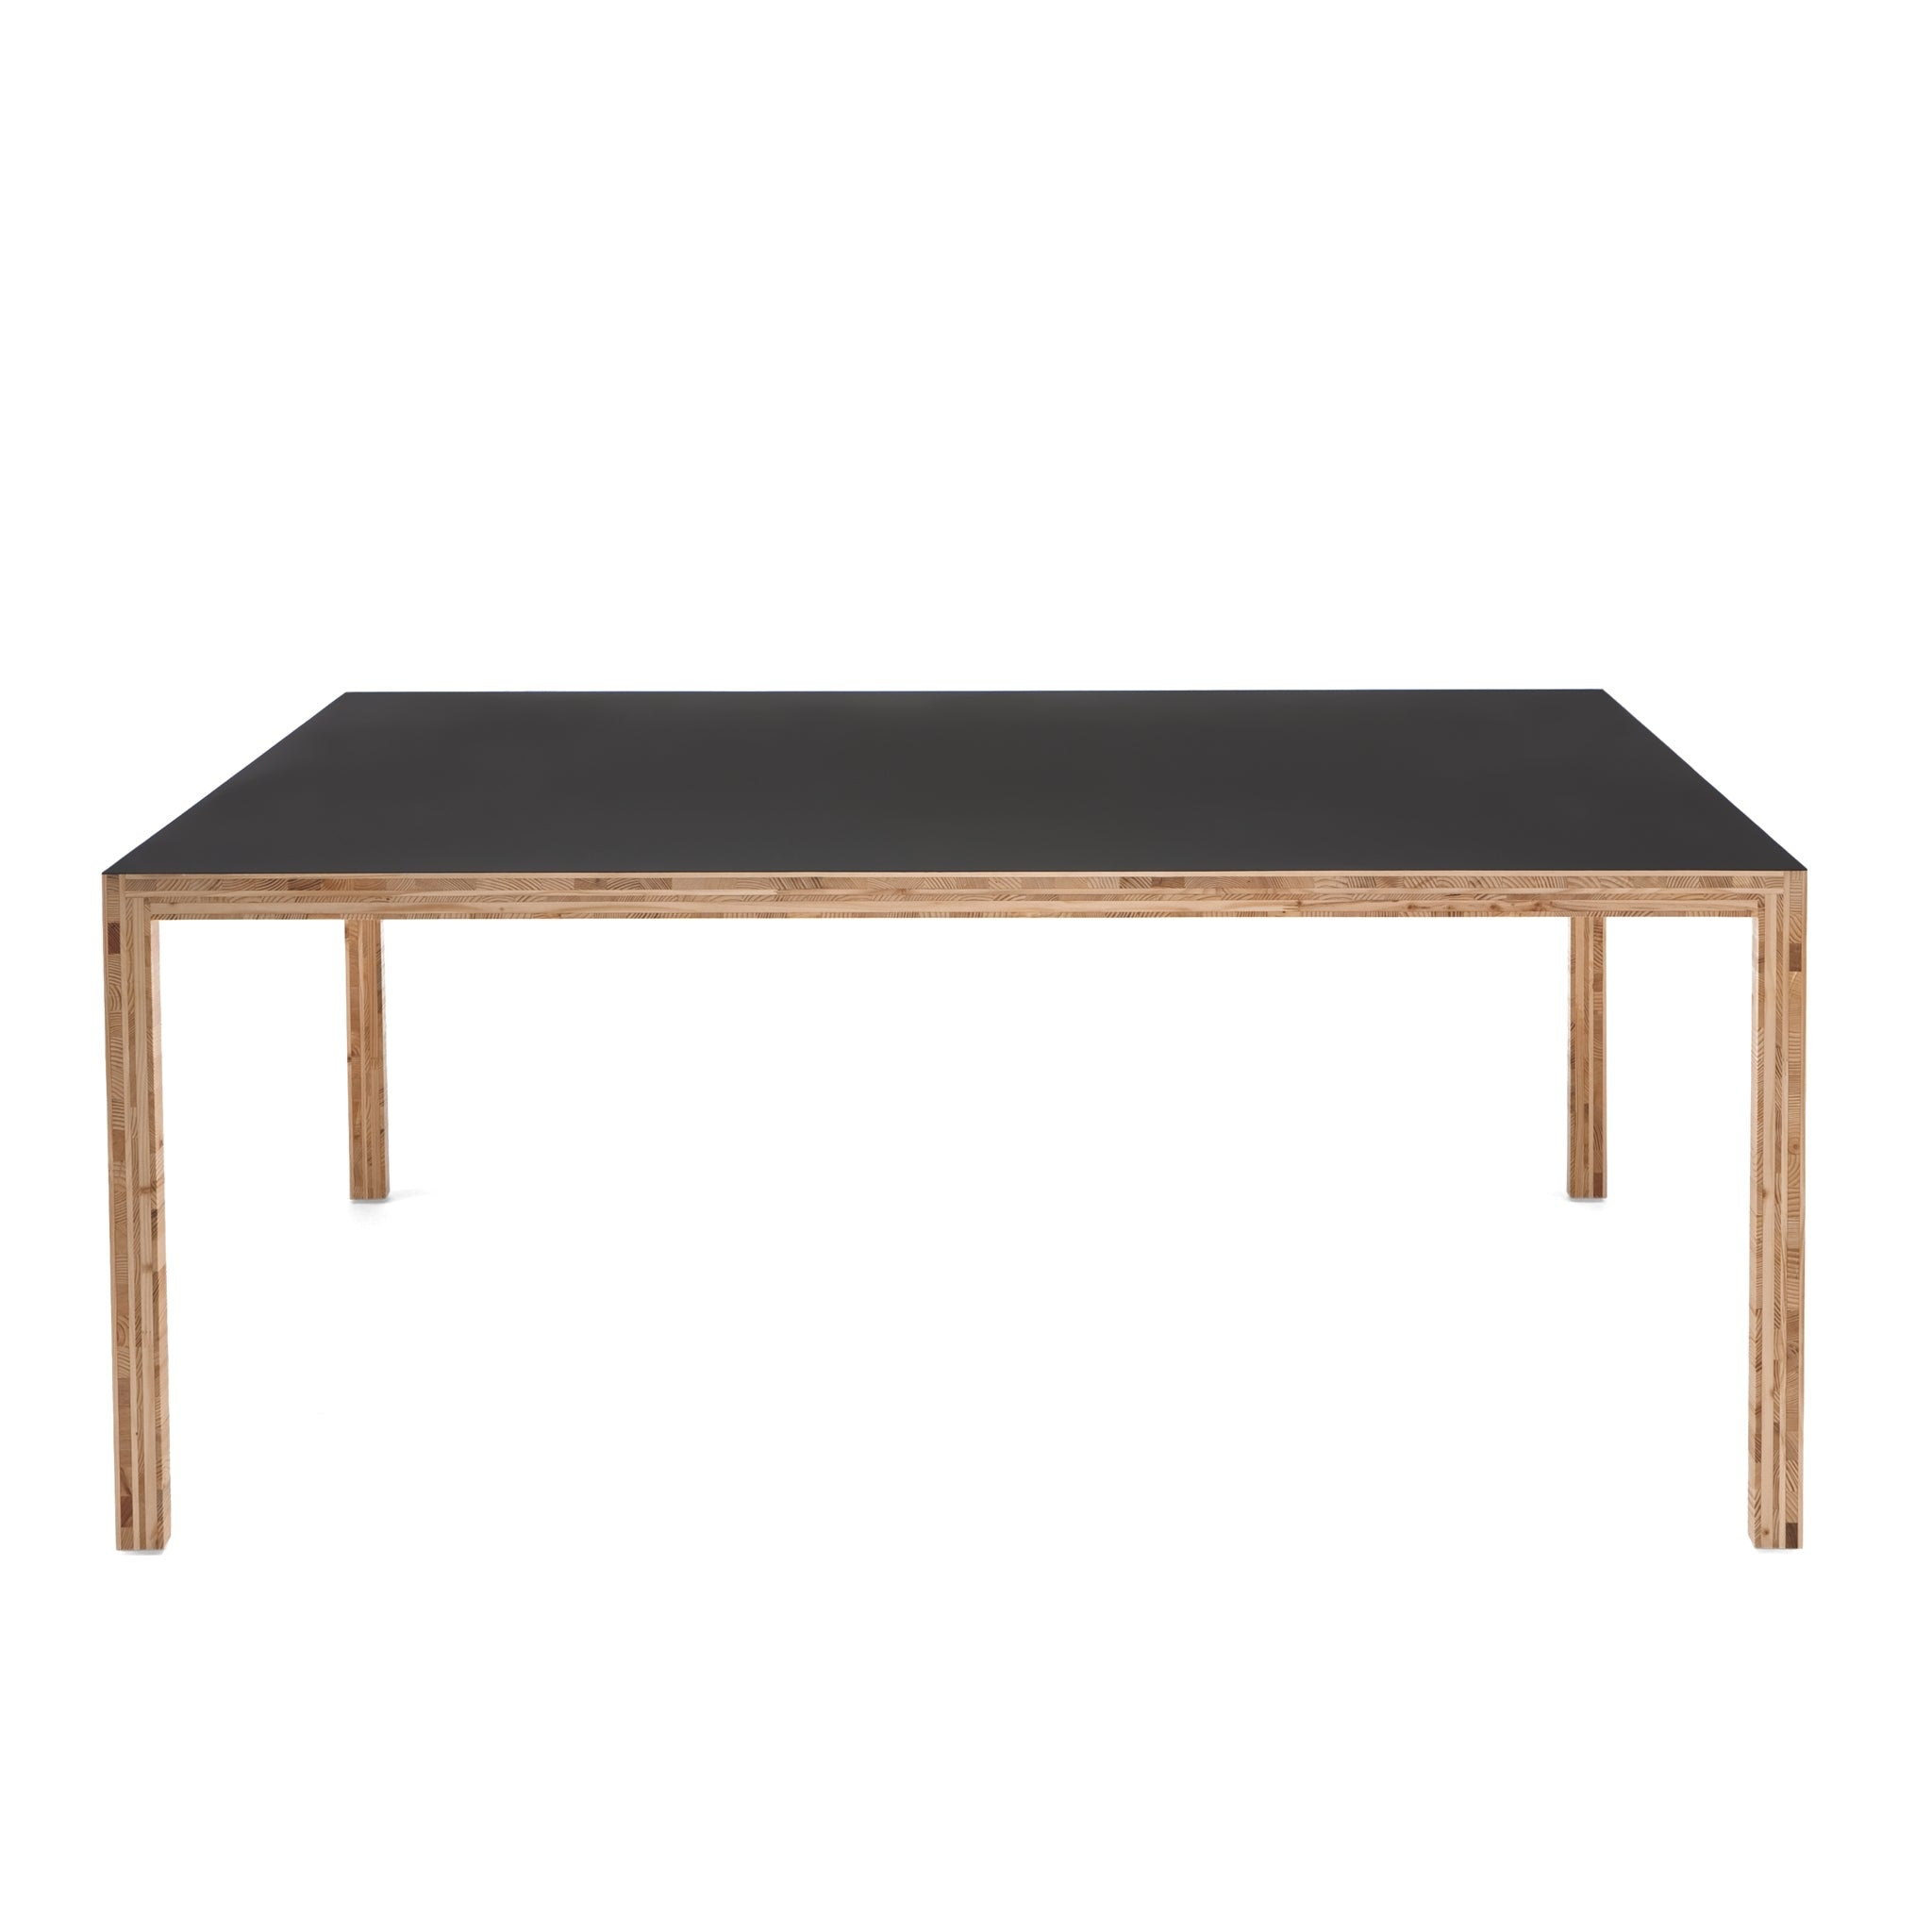 Table by Caruso St John for Established & Sons